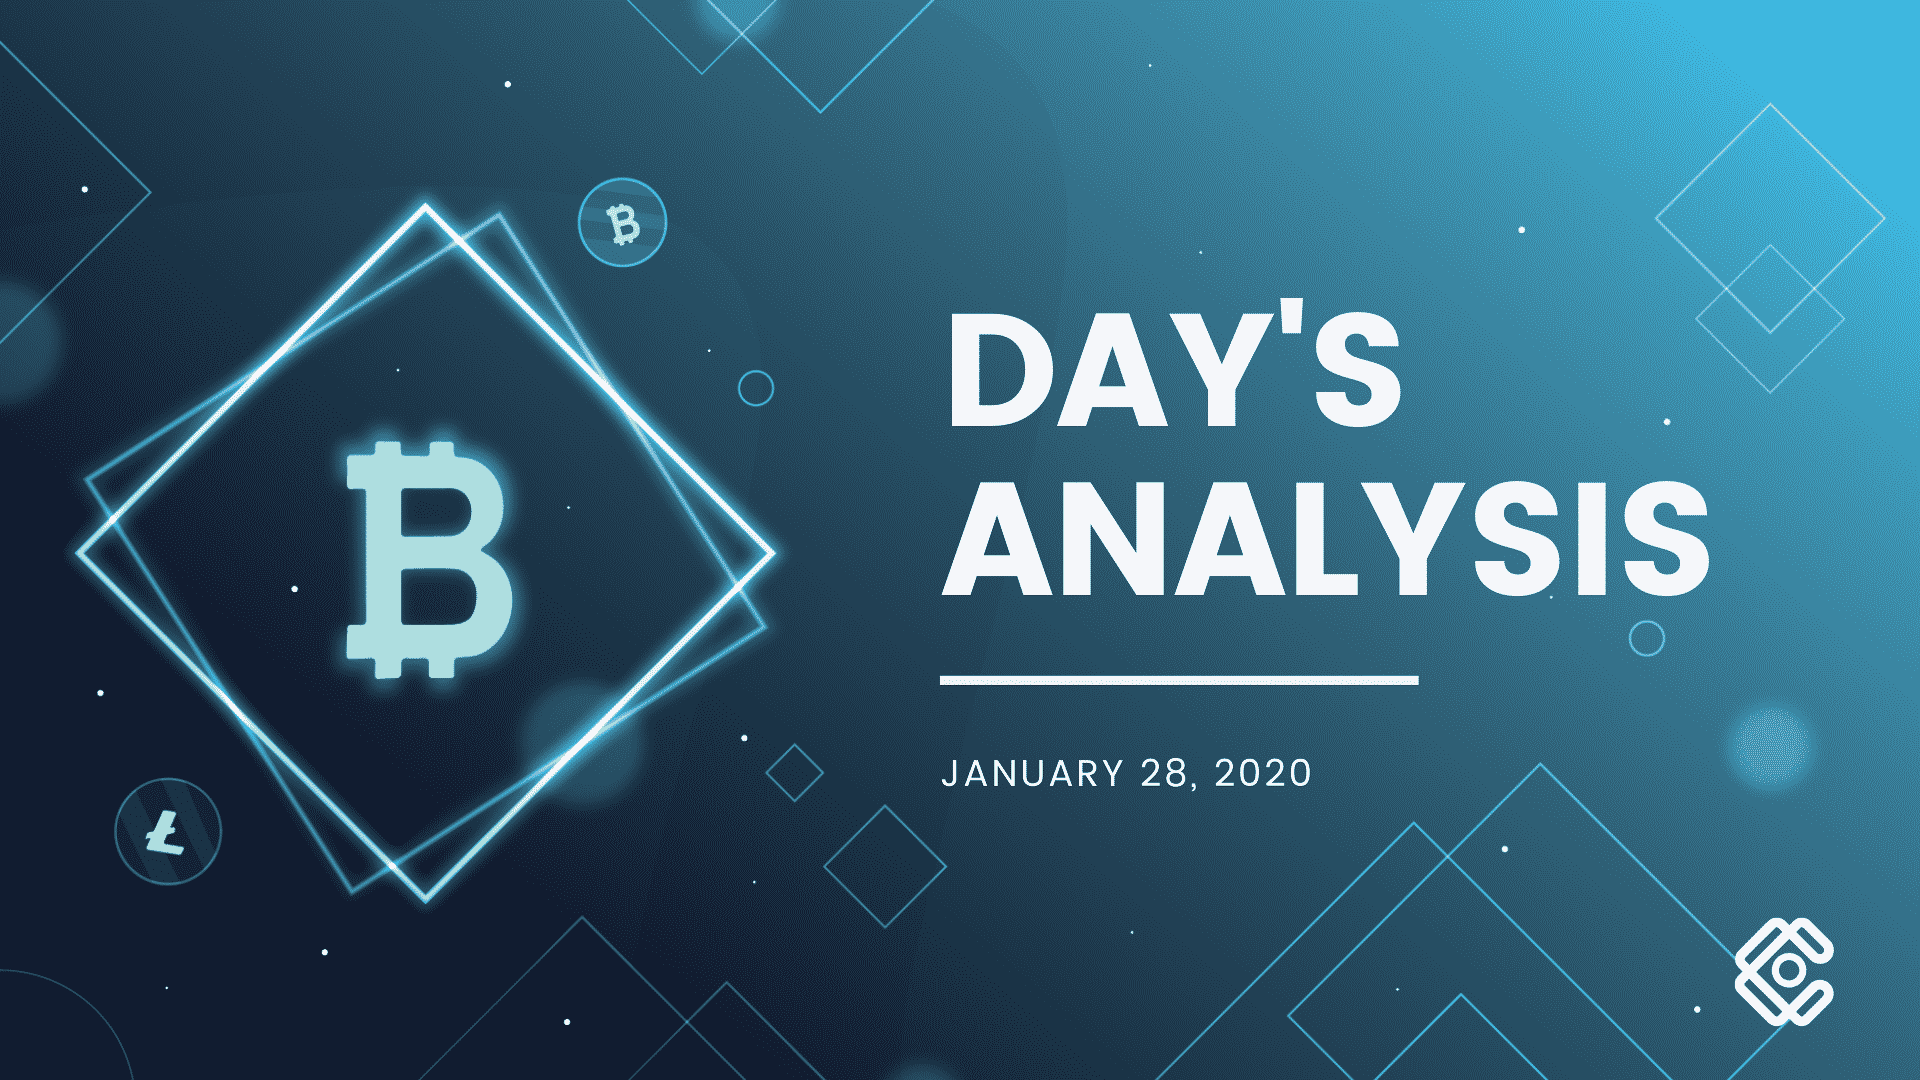 Market Analysis of January 28, 2020